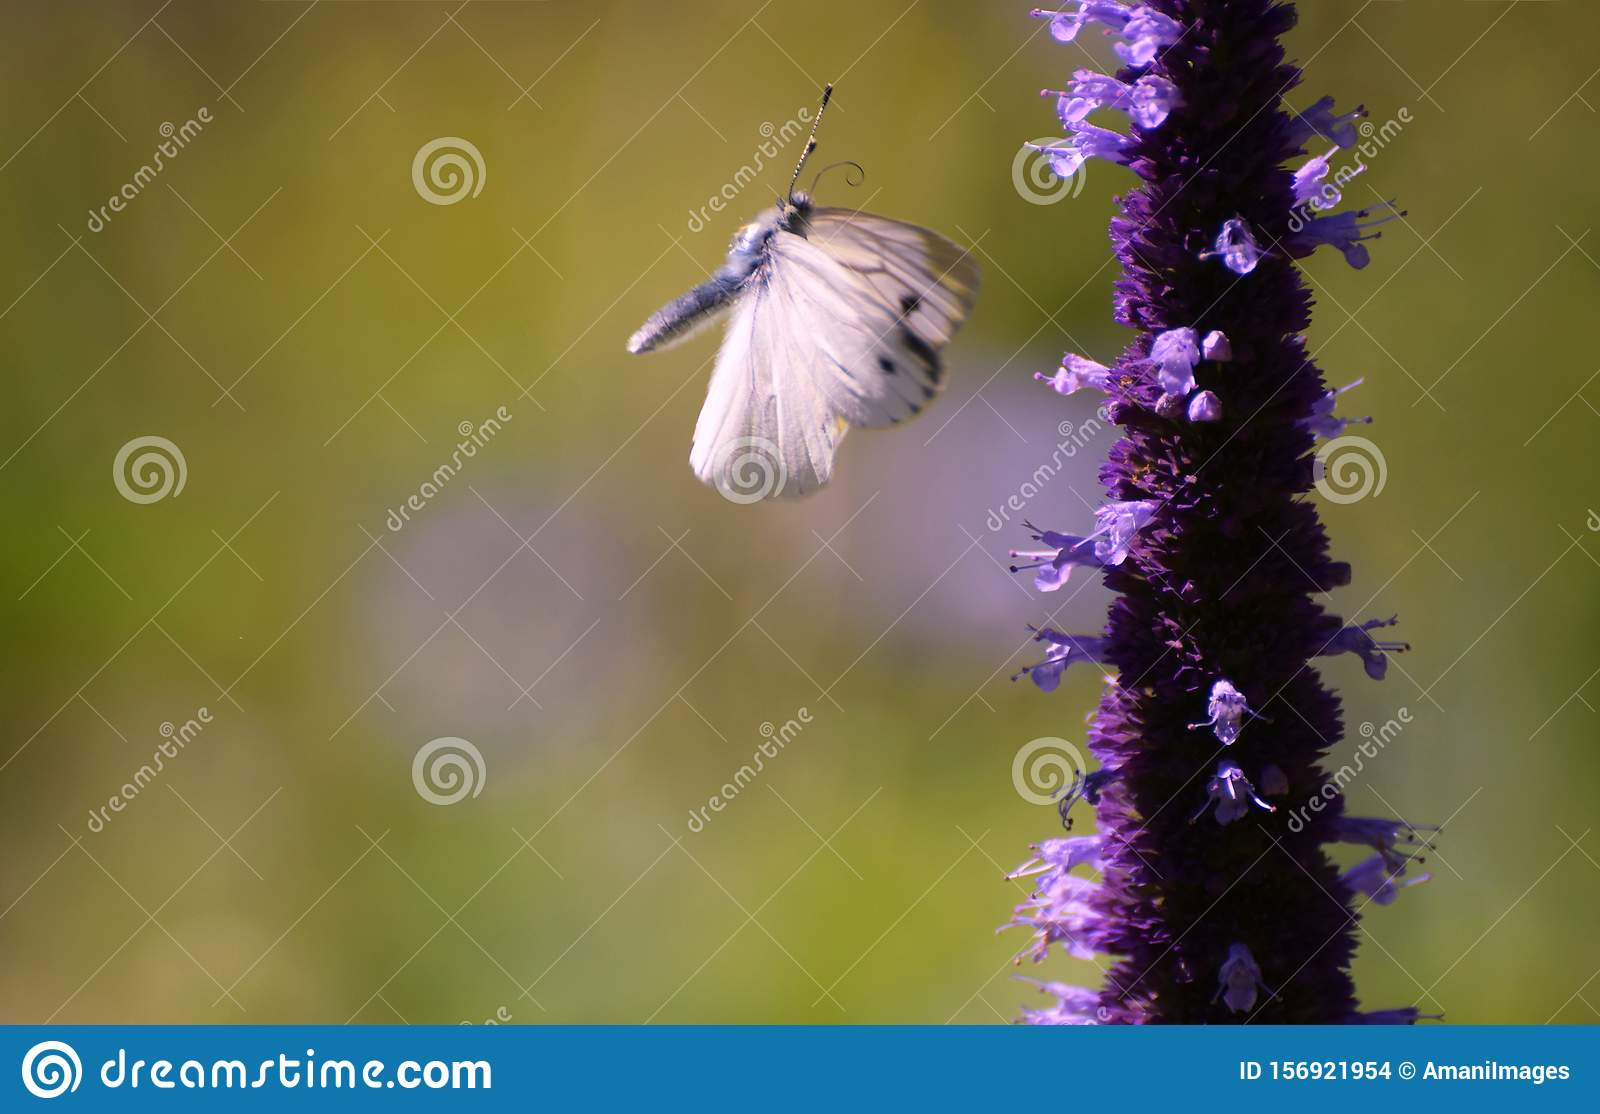 Cabbage white butterfly in flight with wings in motion